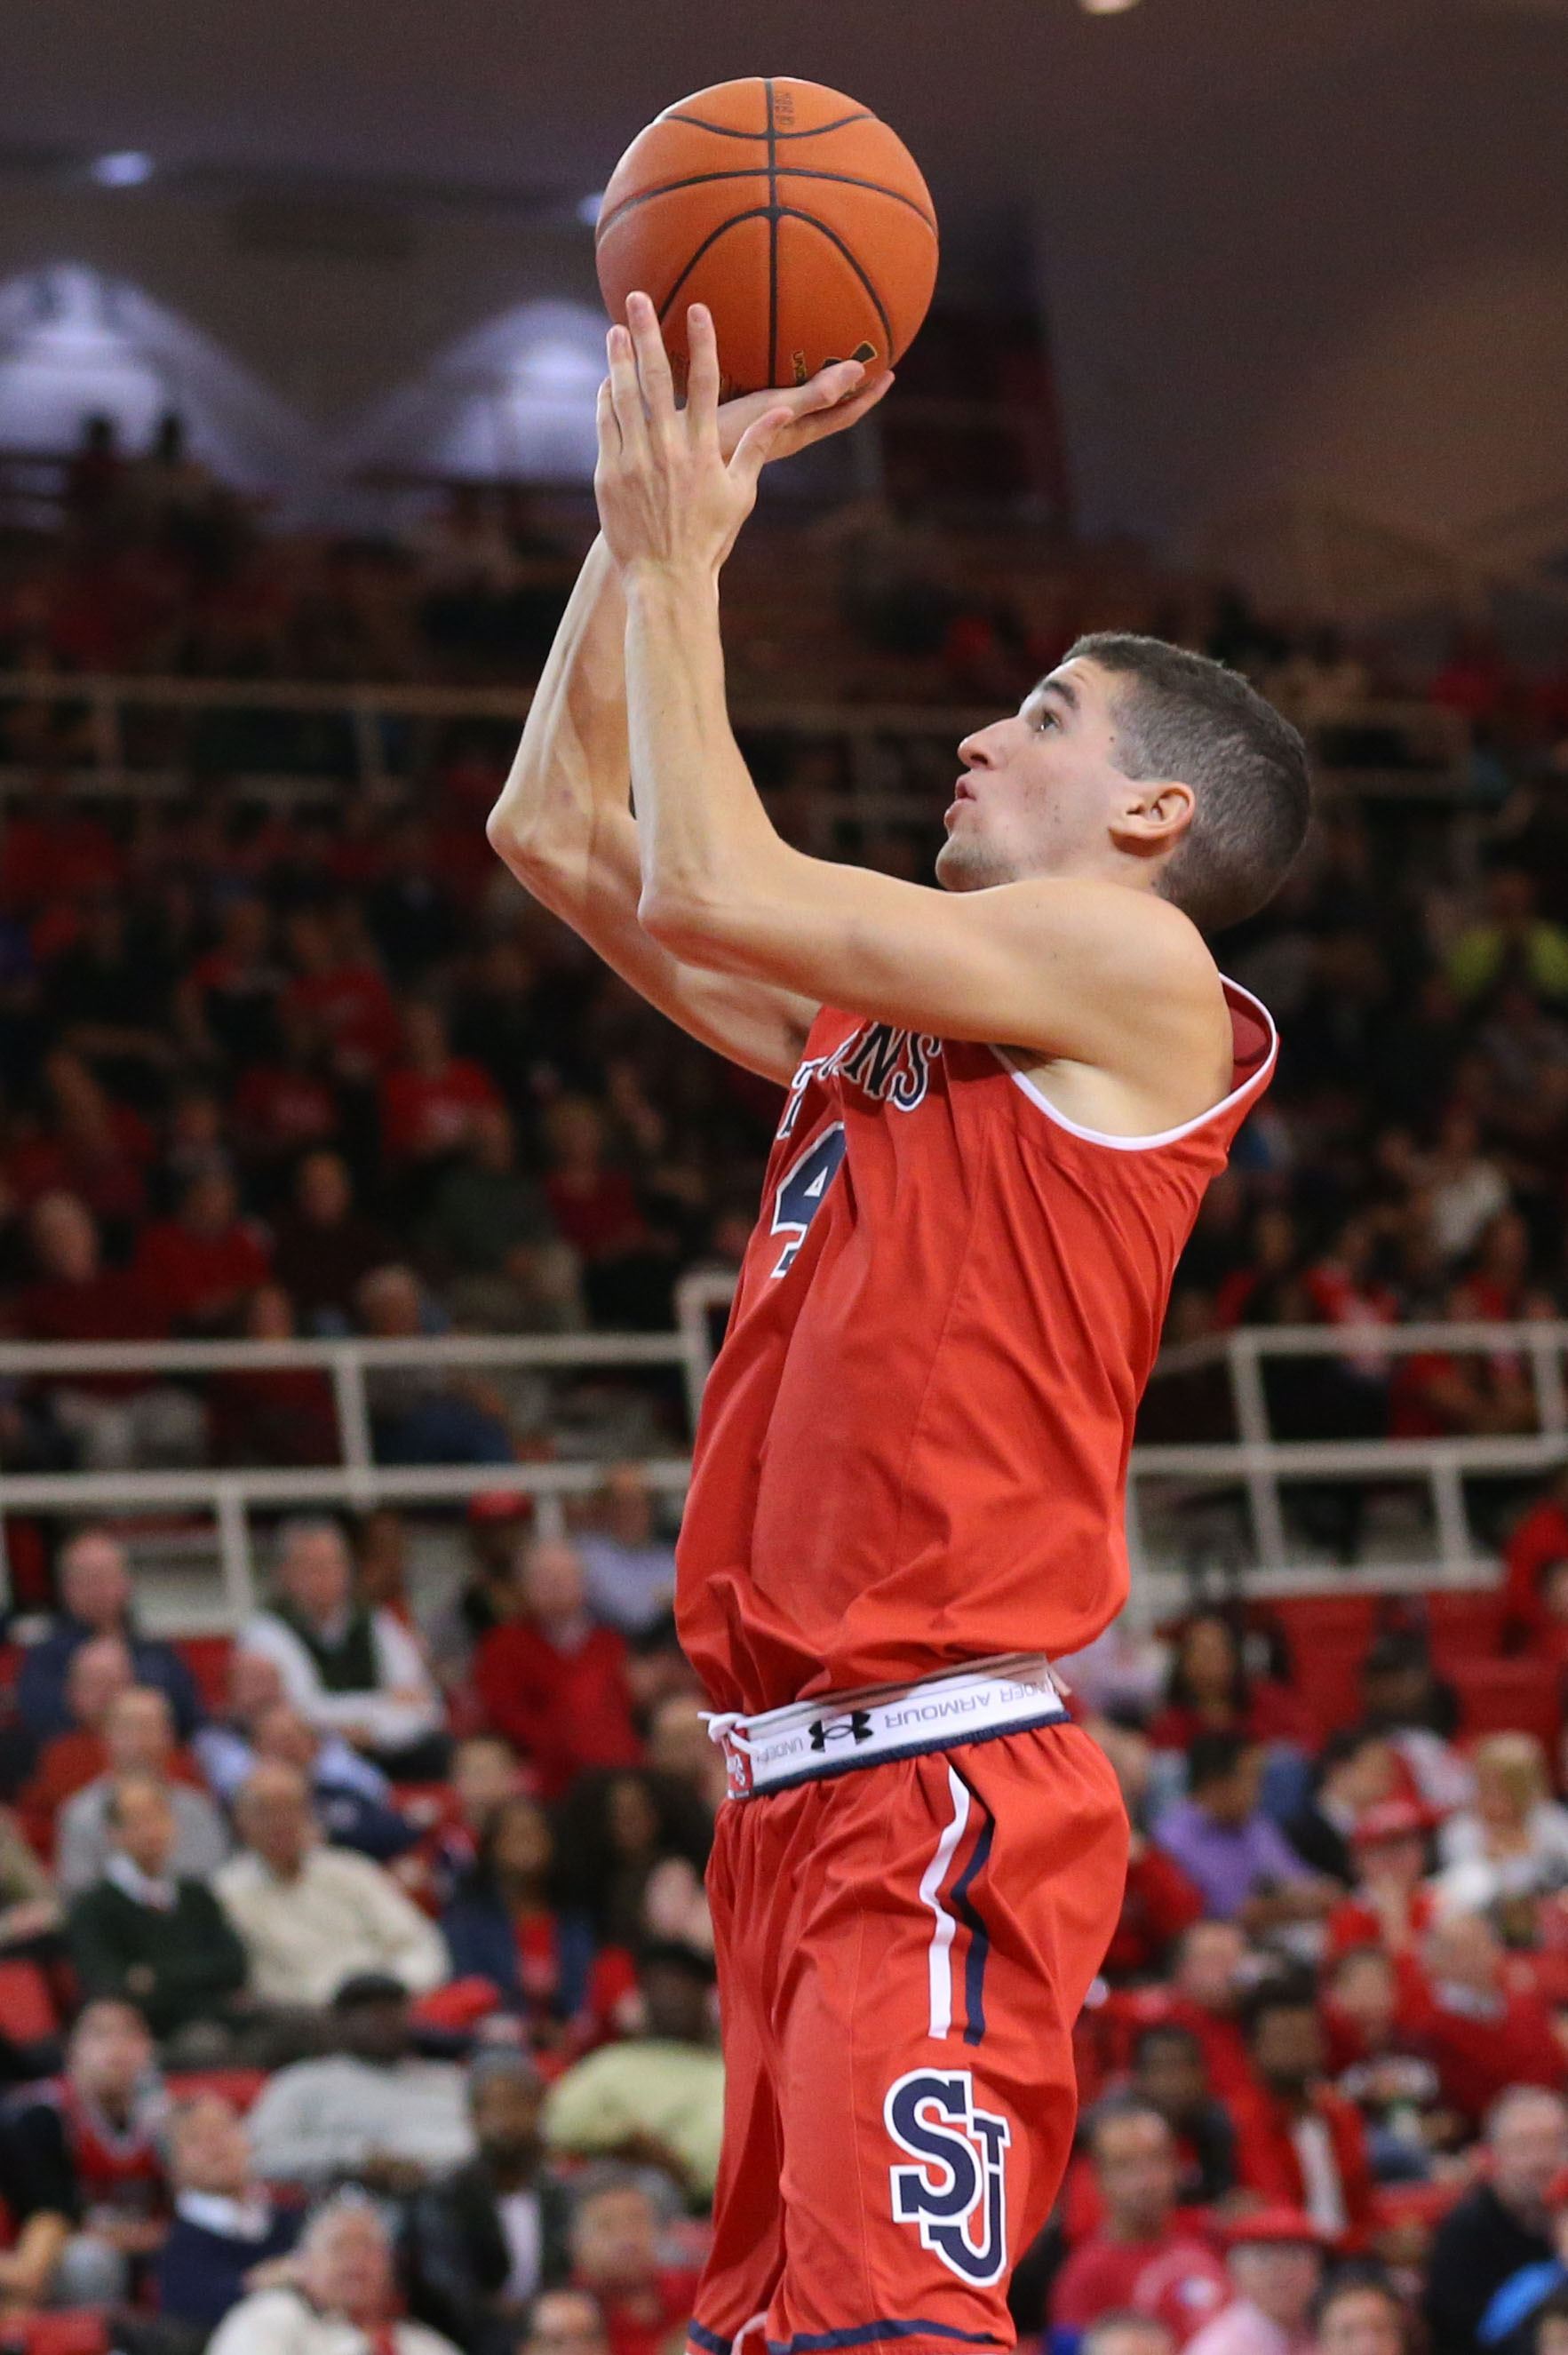 Federico Mussini scored a team-high 11 points for the Red Storm.